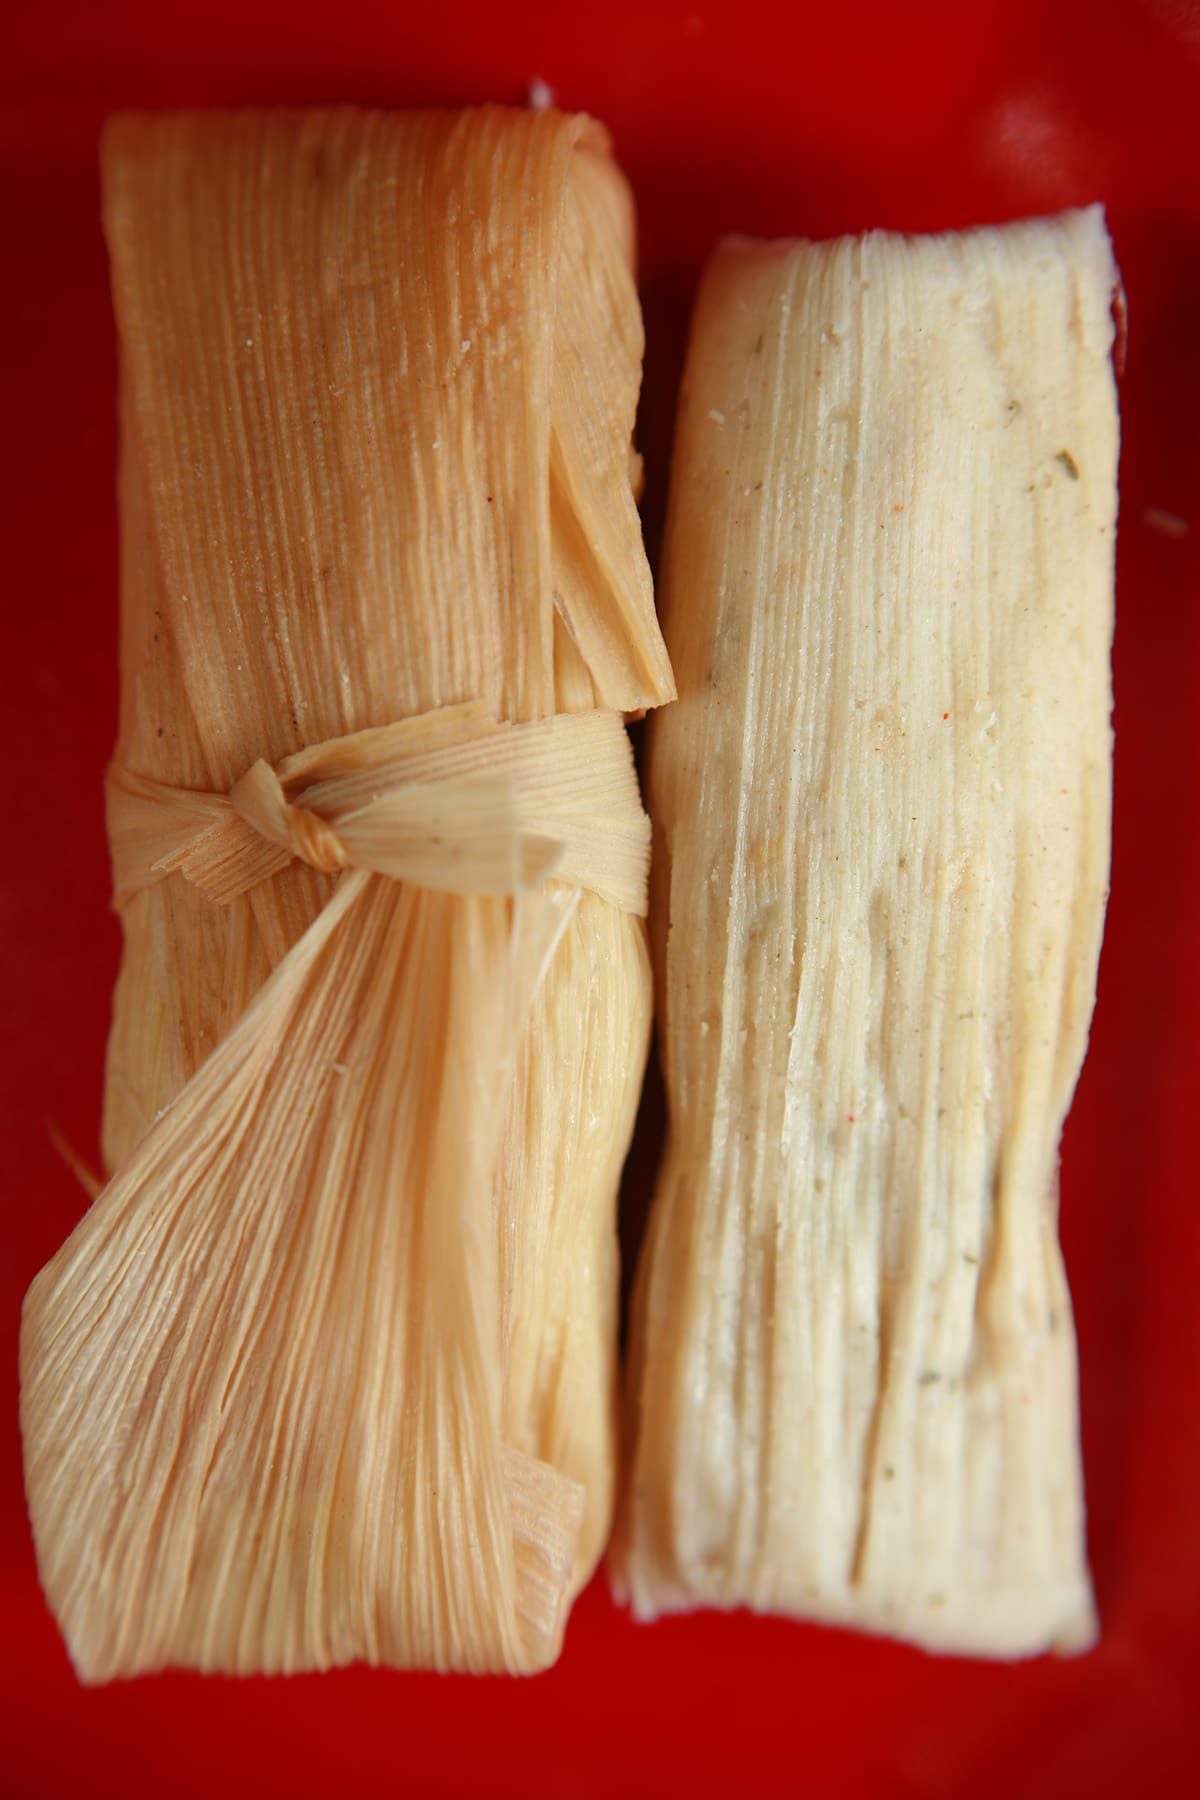 Two salsa verde tamales on a red plate.